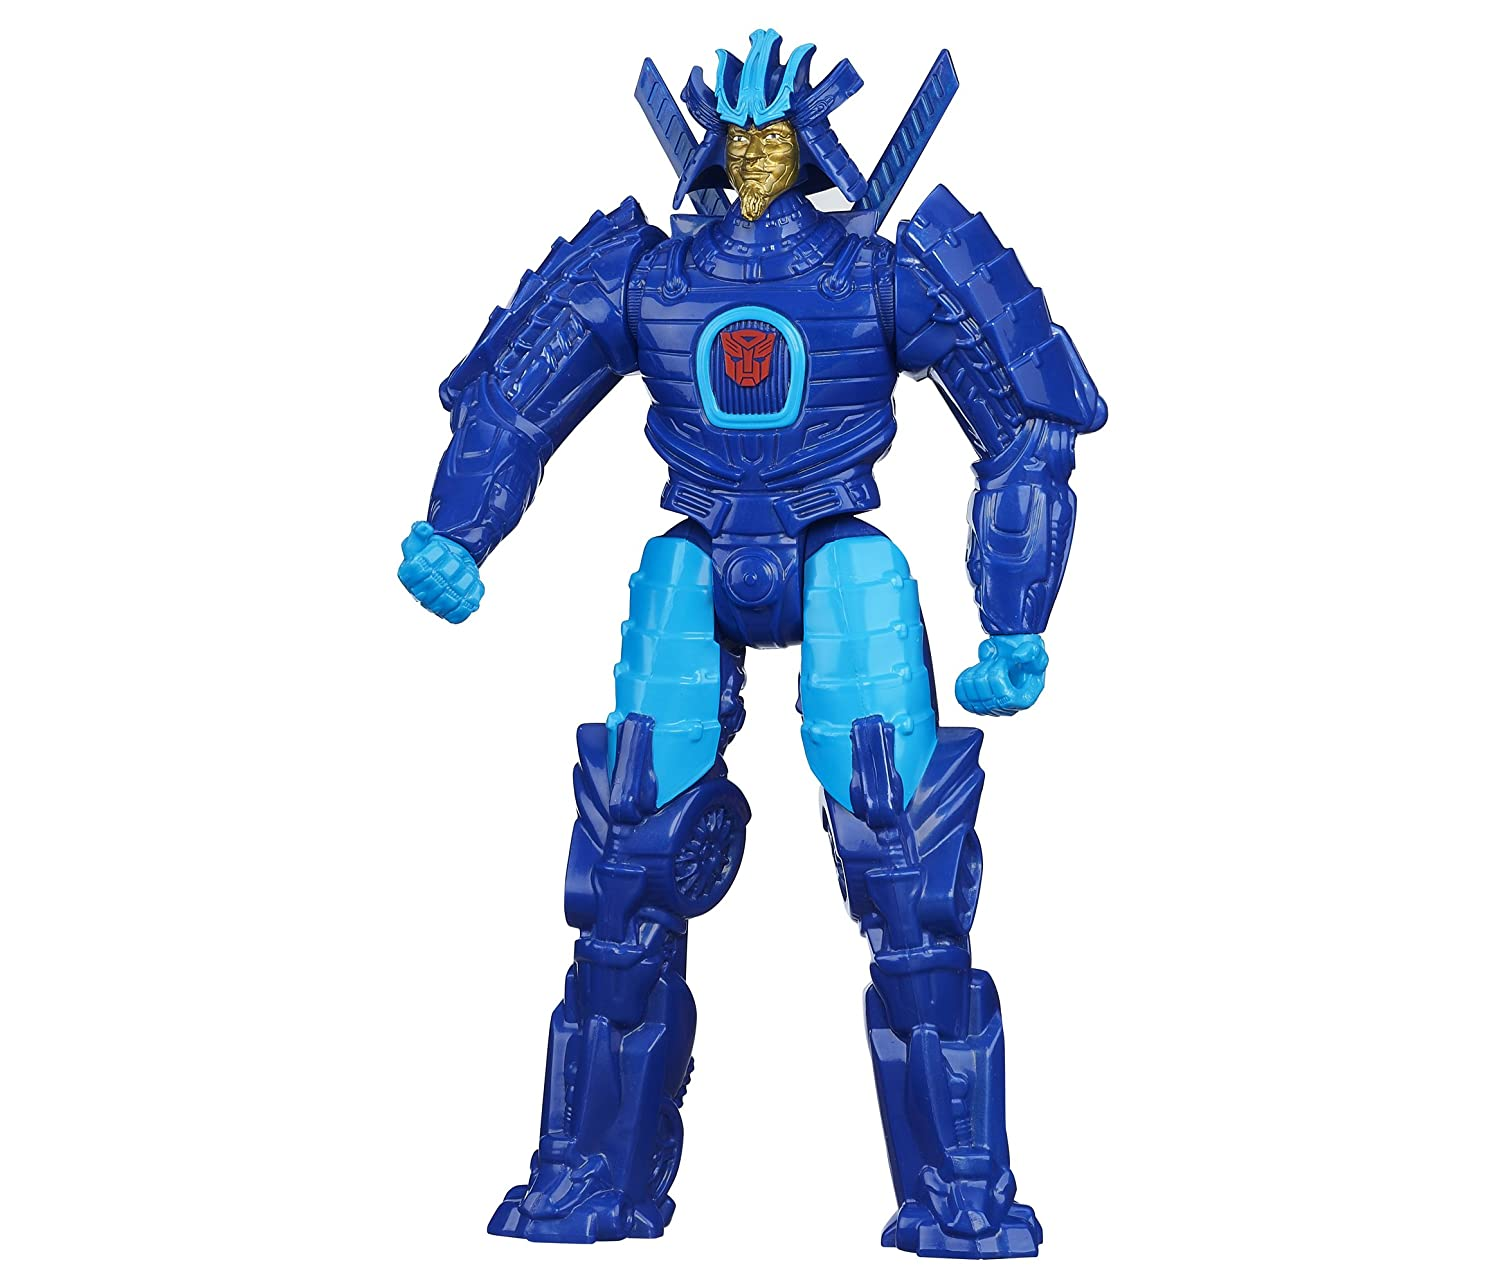 Transformers Age of Extinction Autobot Drift 12-Inch Figure Hasbro A6552000